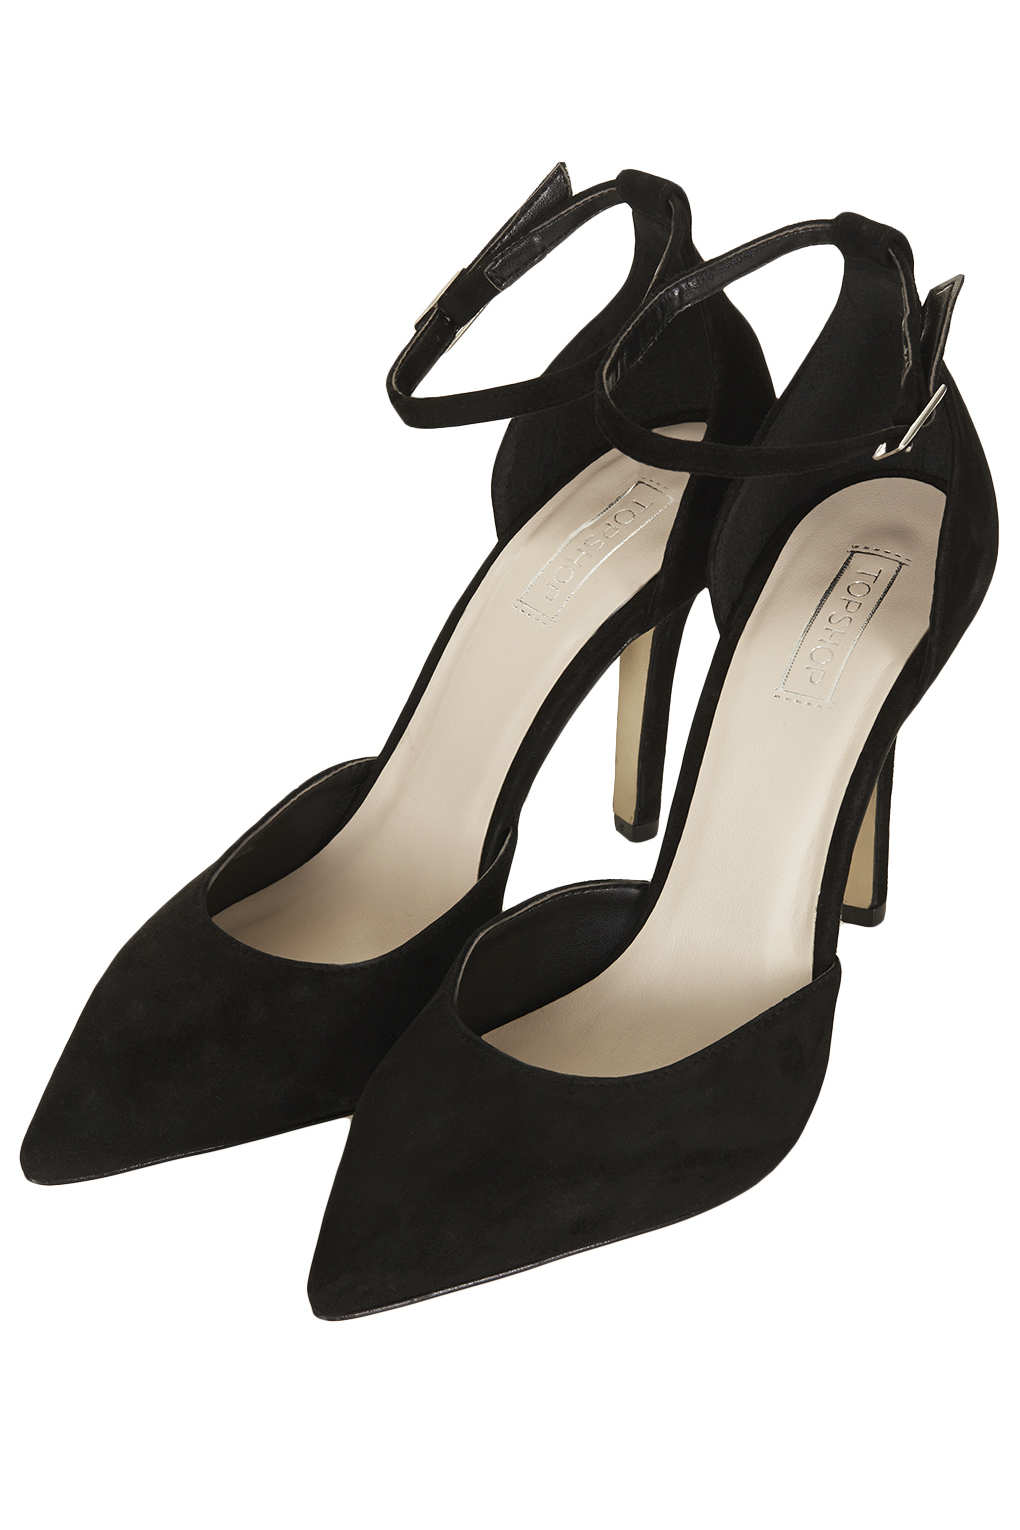 Find great deals on eBay for black shoe with ankle strap. Shop with confidence.